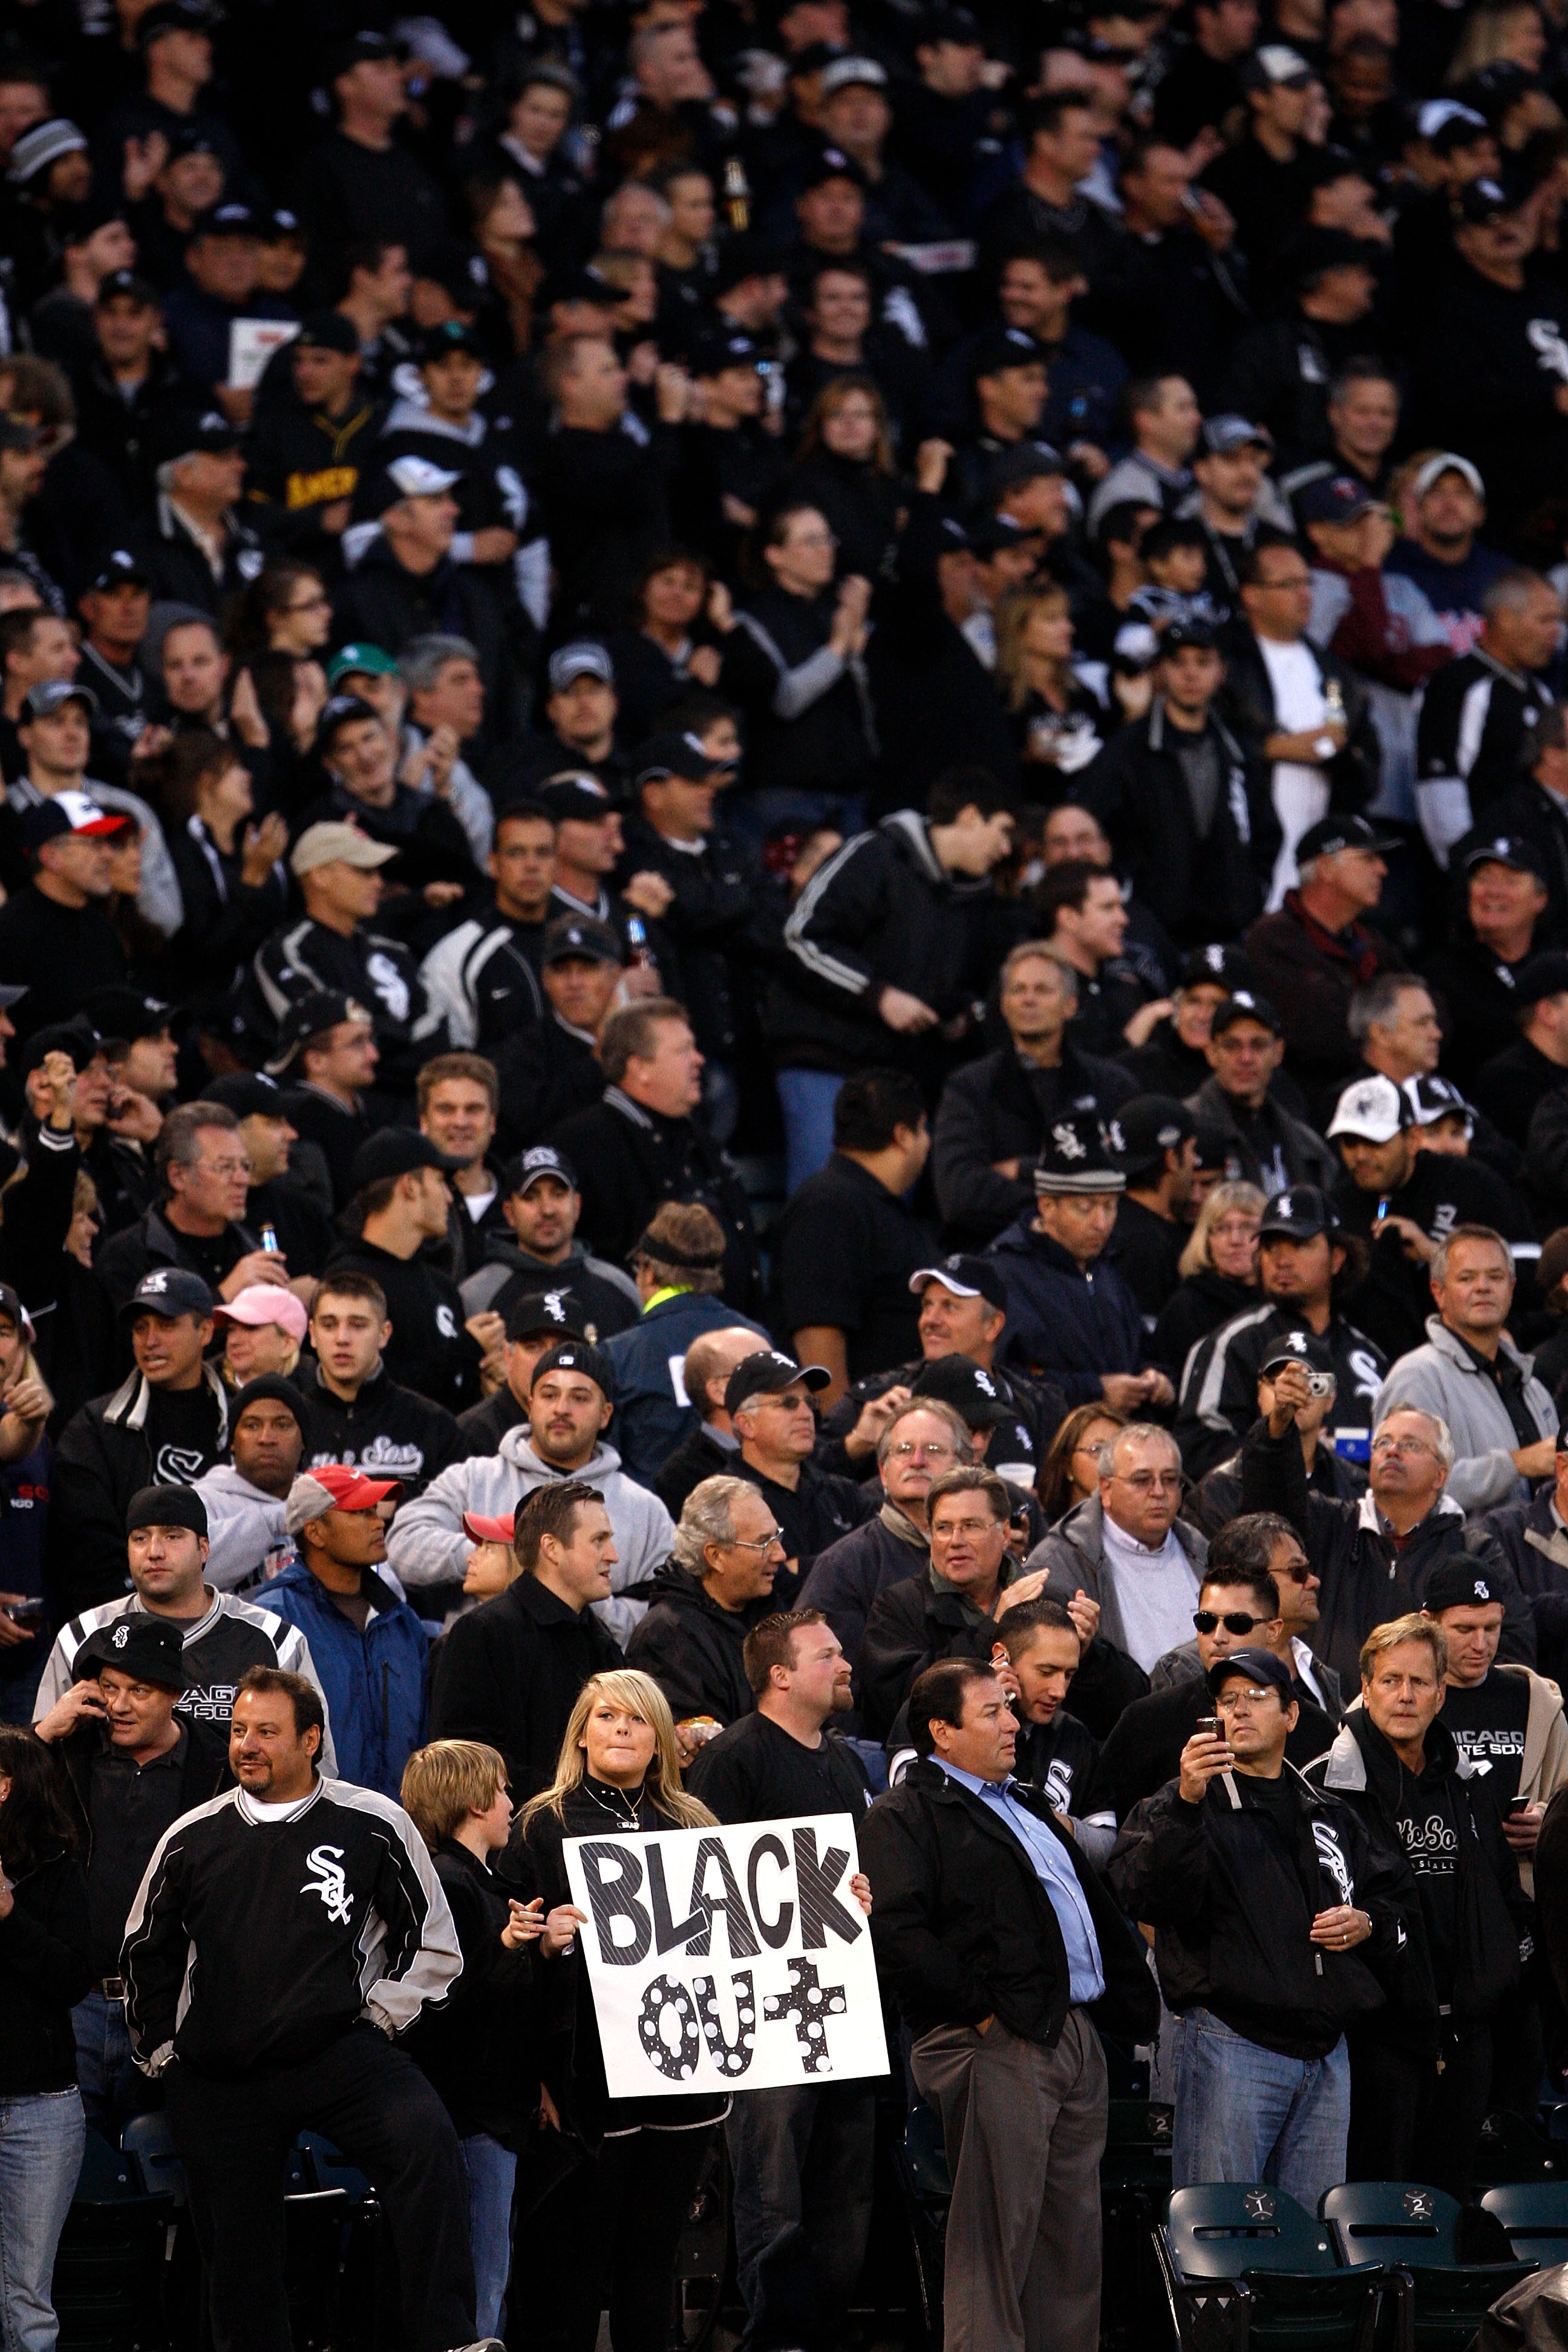 """White Sox fans with their own """"black out"""" theme."""